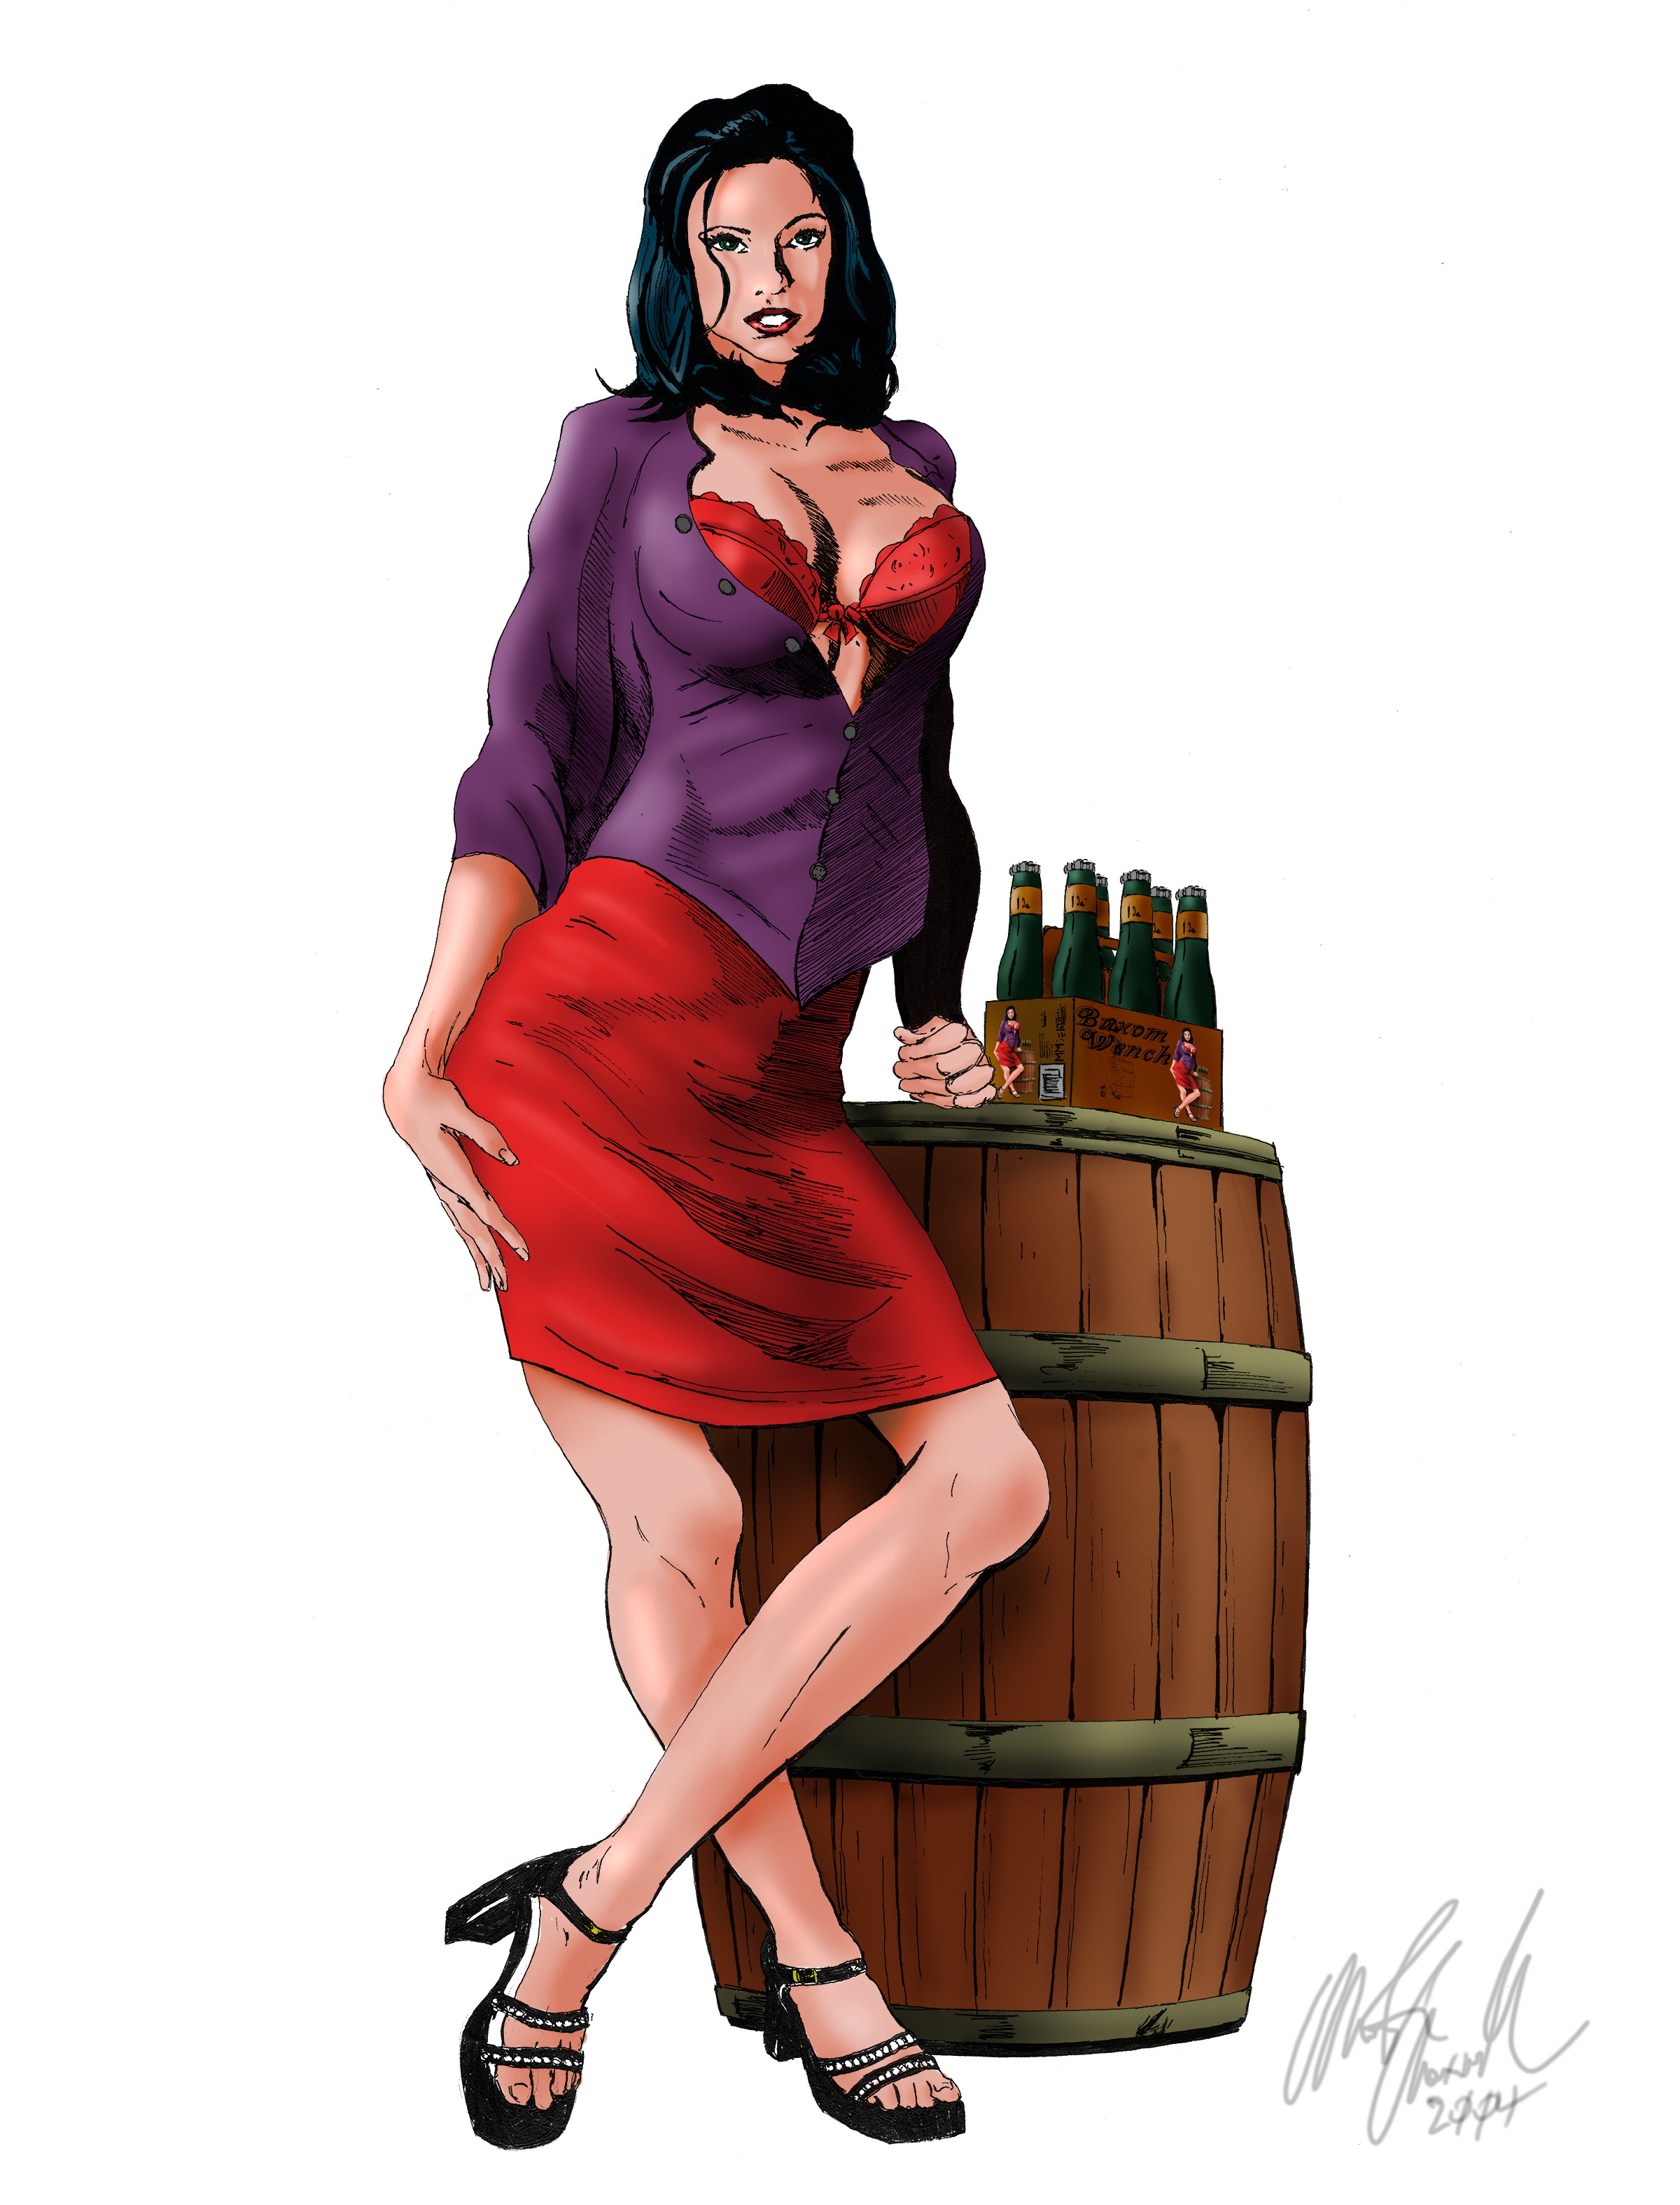 """Commissioned work, 8' x 10"""" pen and ink drawing colored in Photoshop. Used as a logo for a custom brewed beer."""